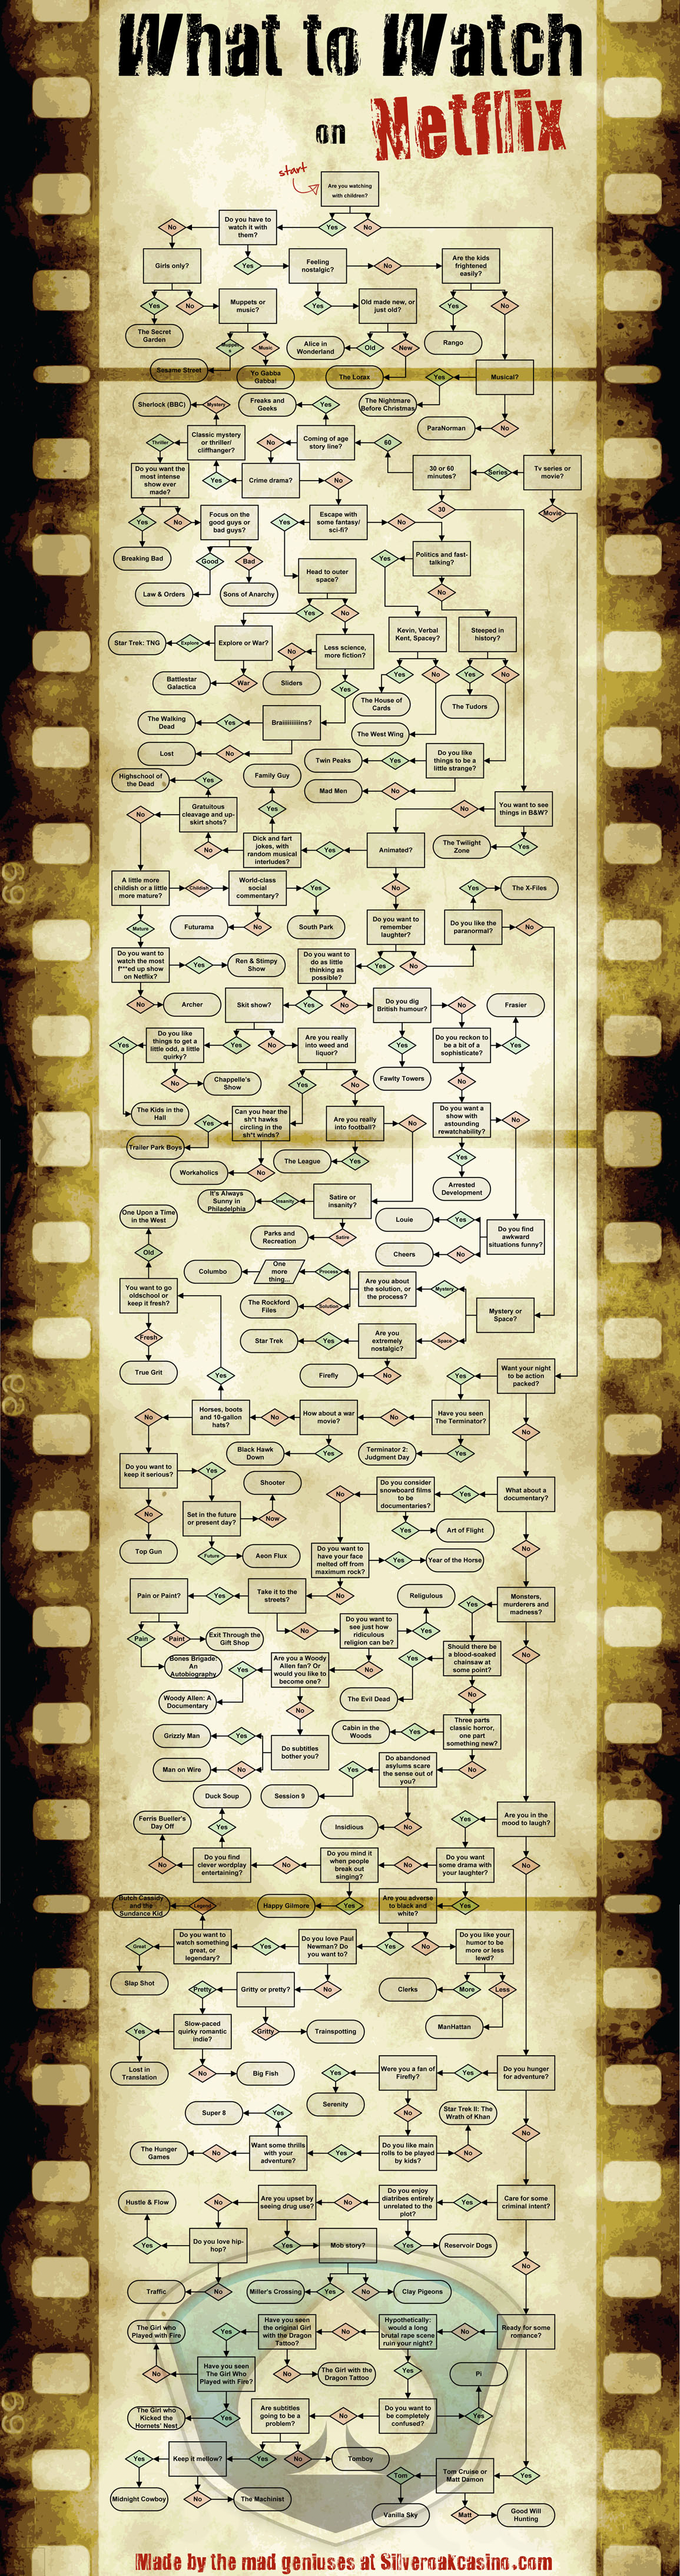 netflix-movies-extreme-guide-flowchart